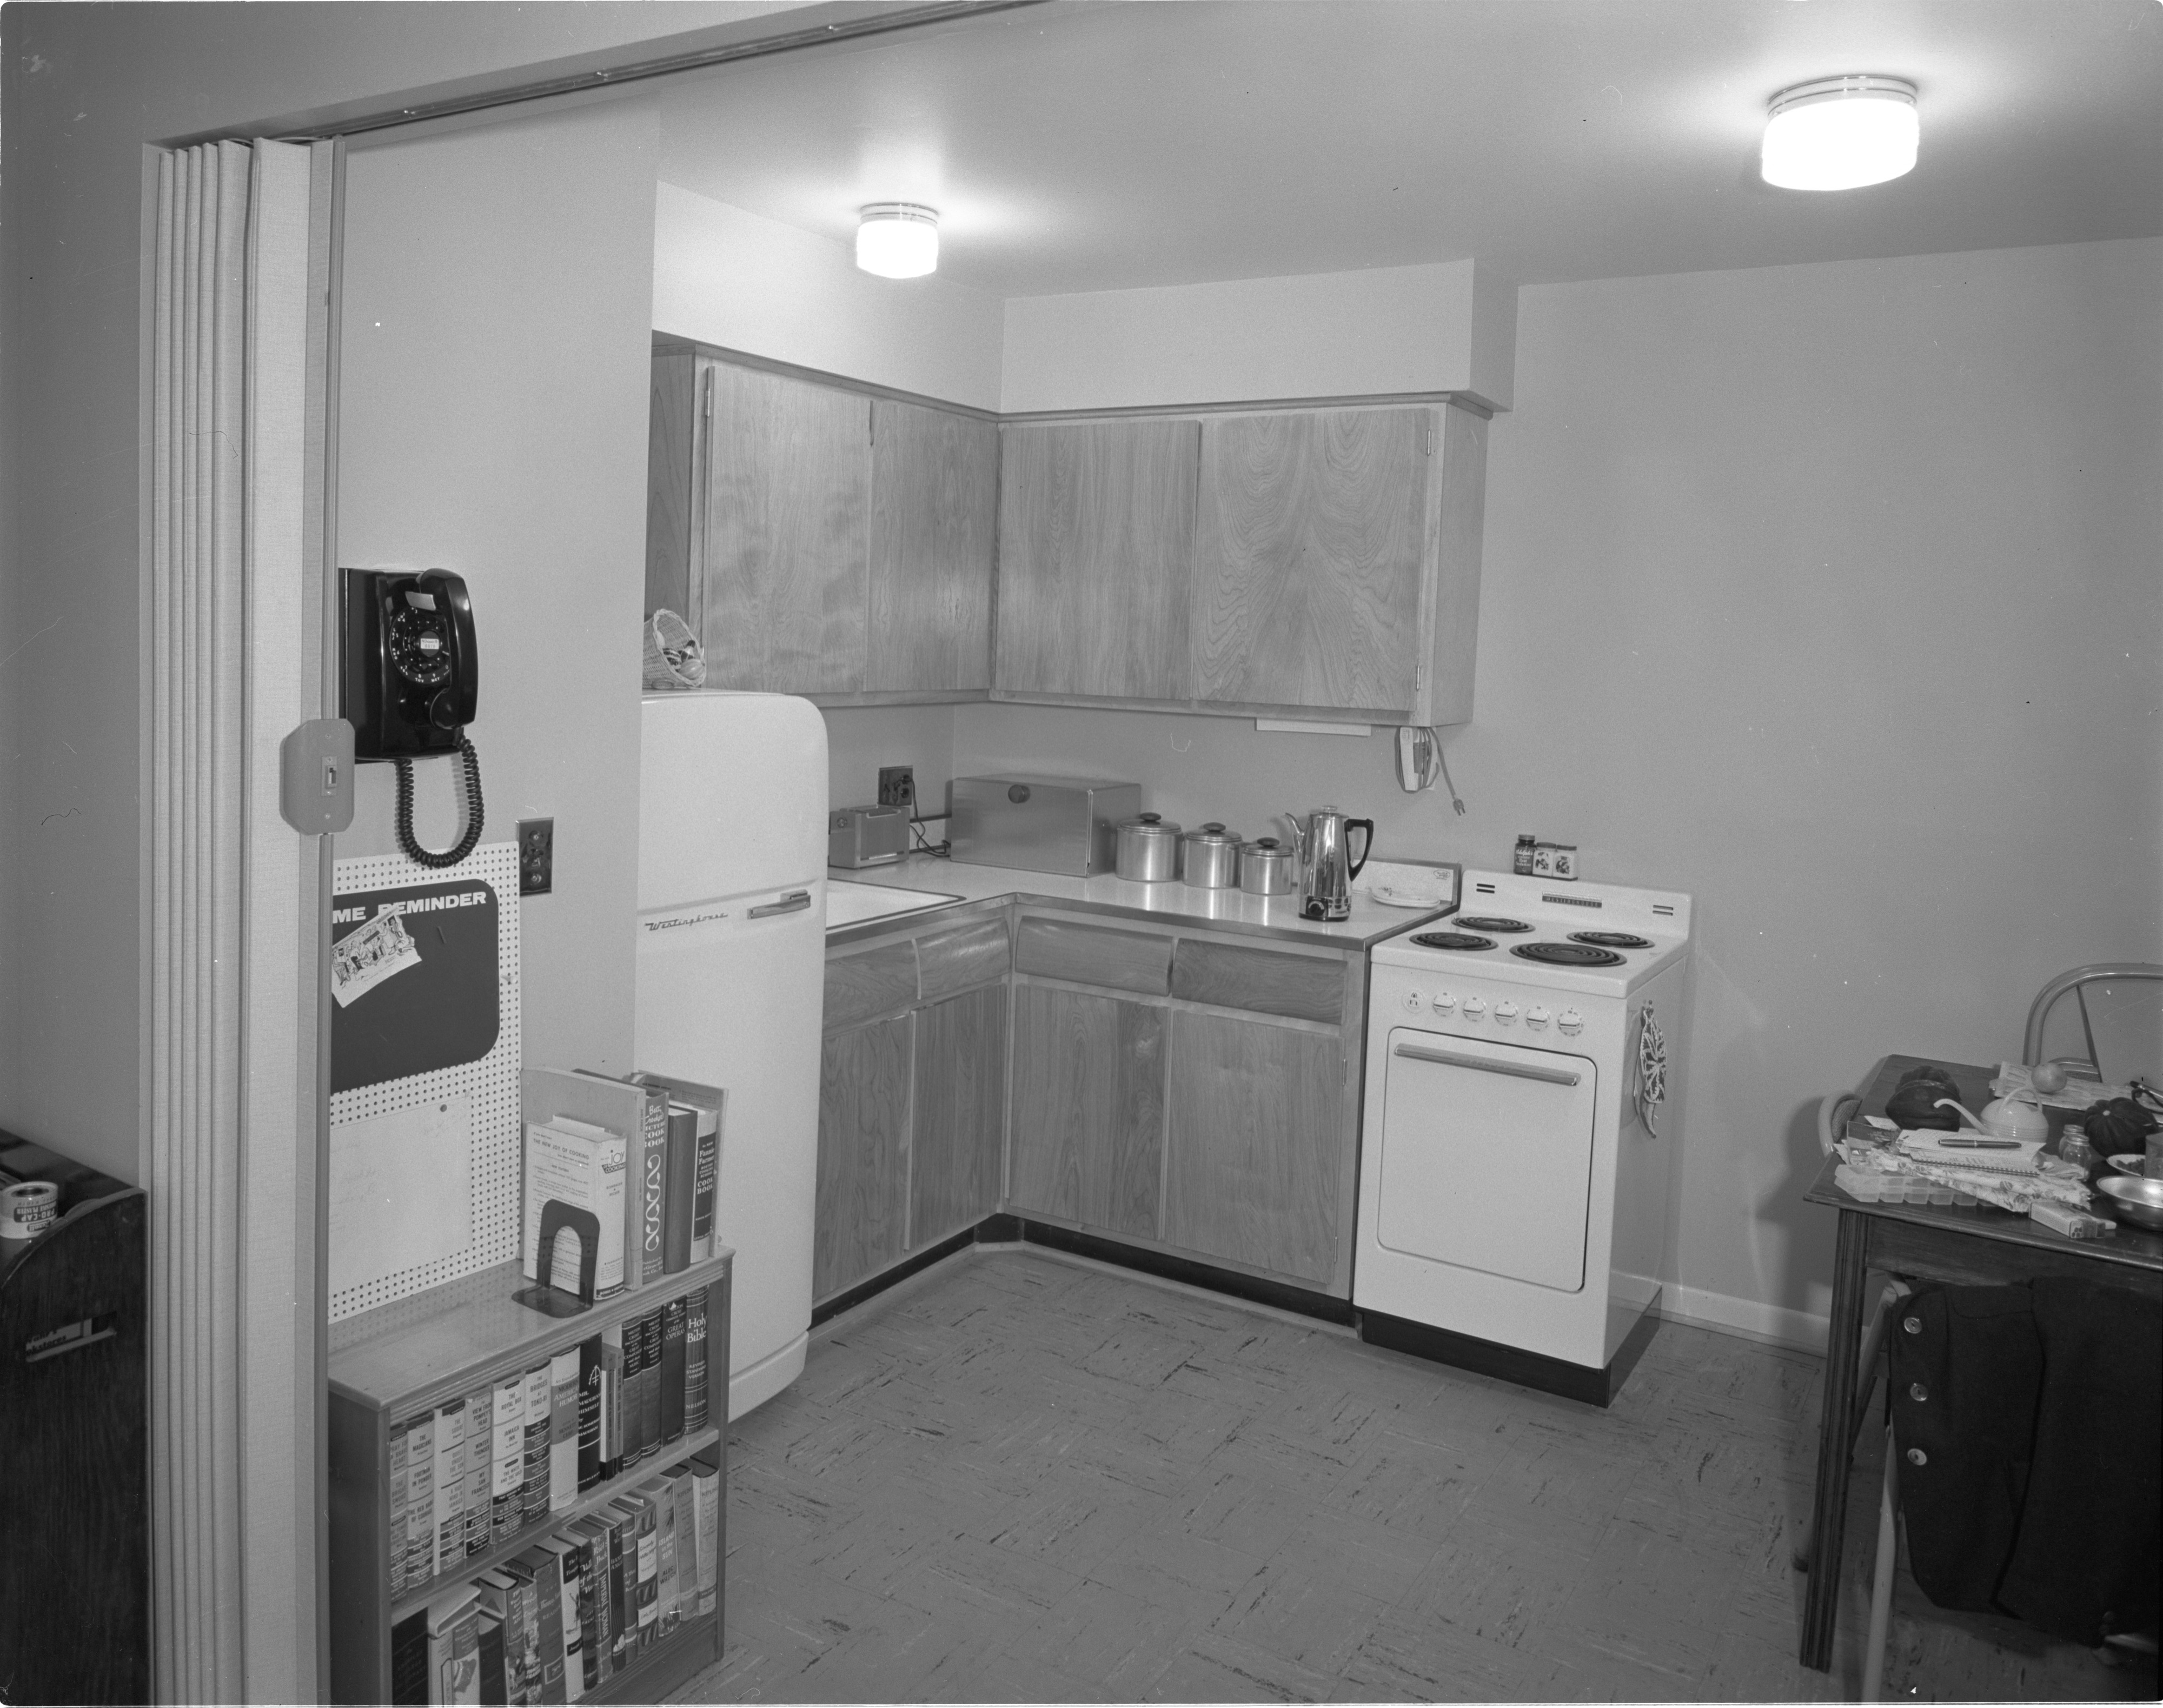 Newly Constructed Huron Arms Apartments - Kitchen, September 1956 image